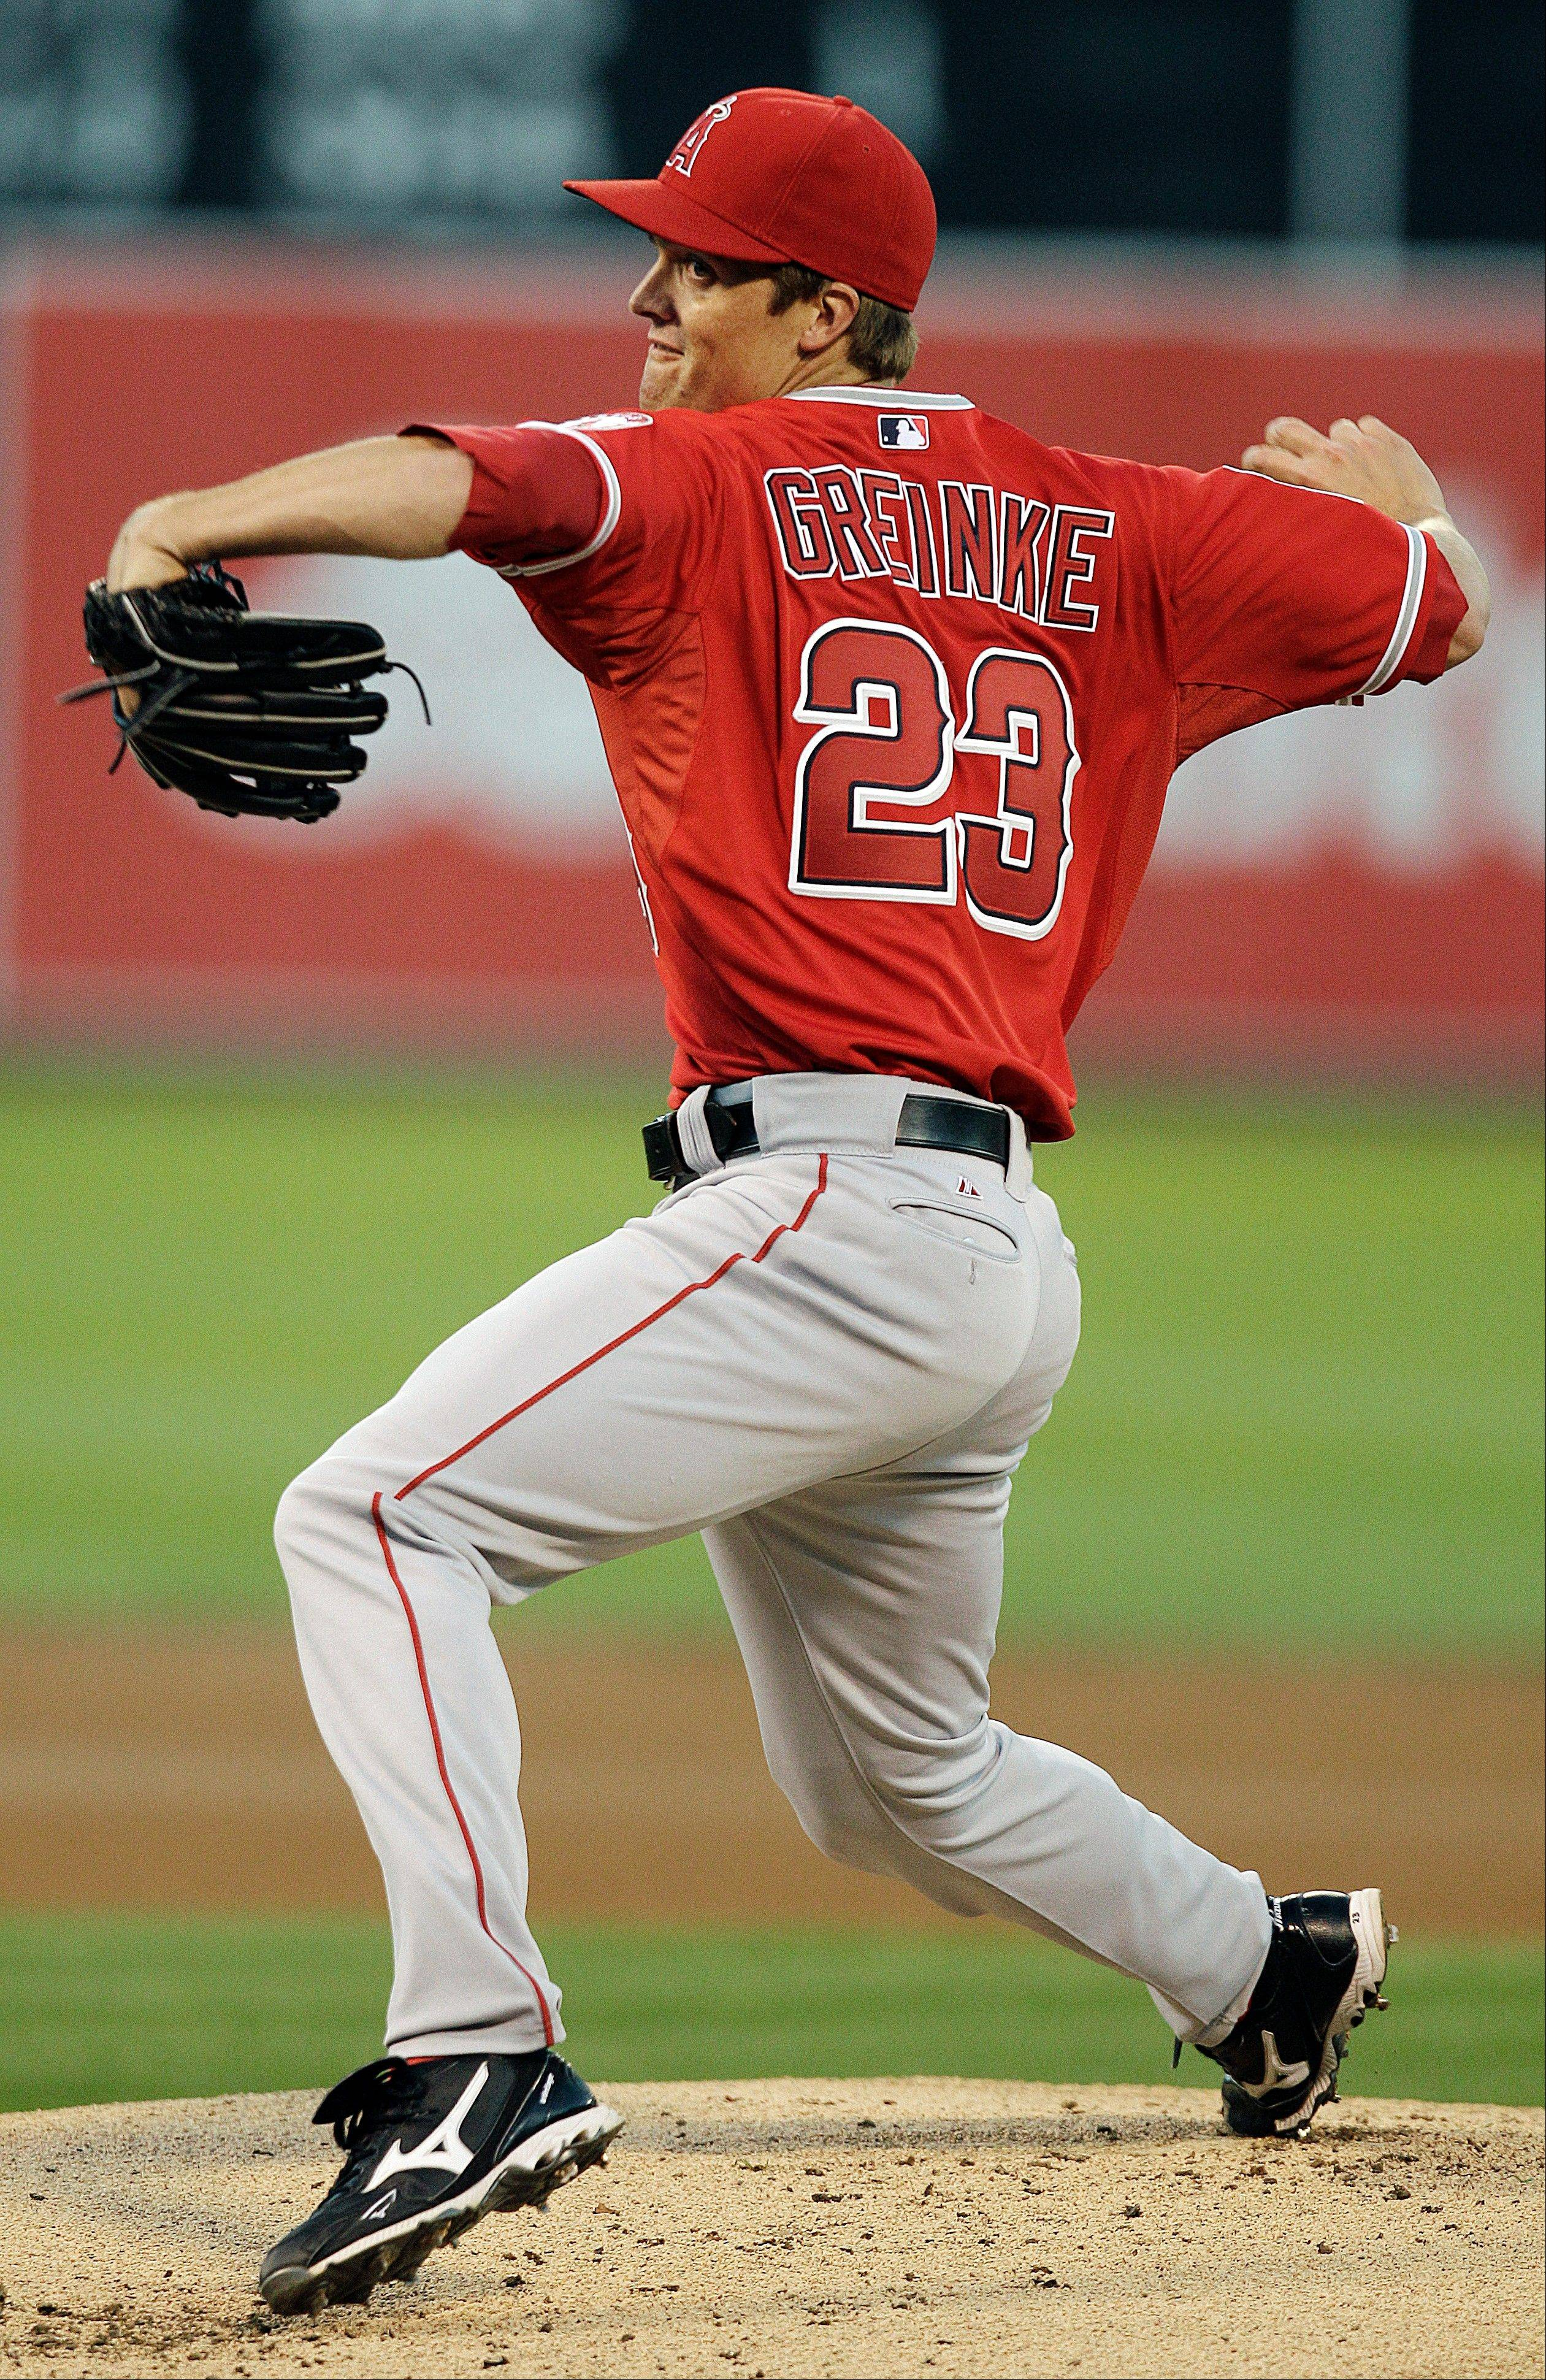 Starter Zack Greinke scattered four hits, struck out four and walked two in the Los Angeles Angels' victory Tuesday in Oakland.